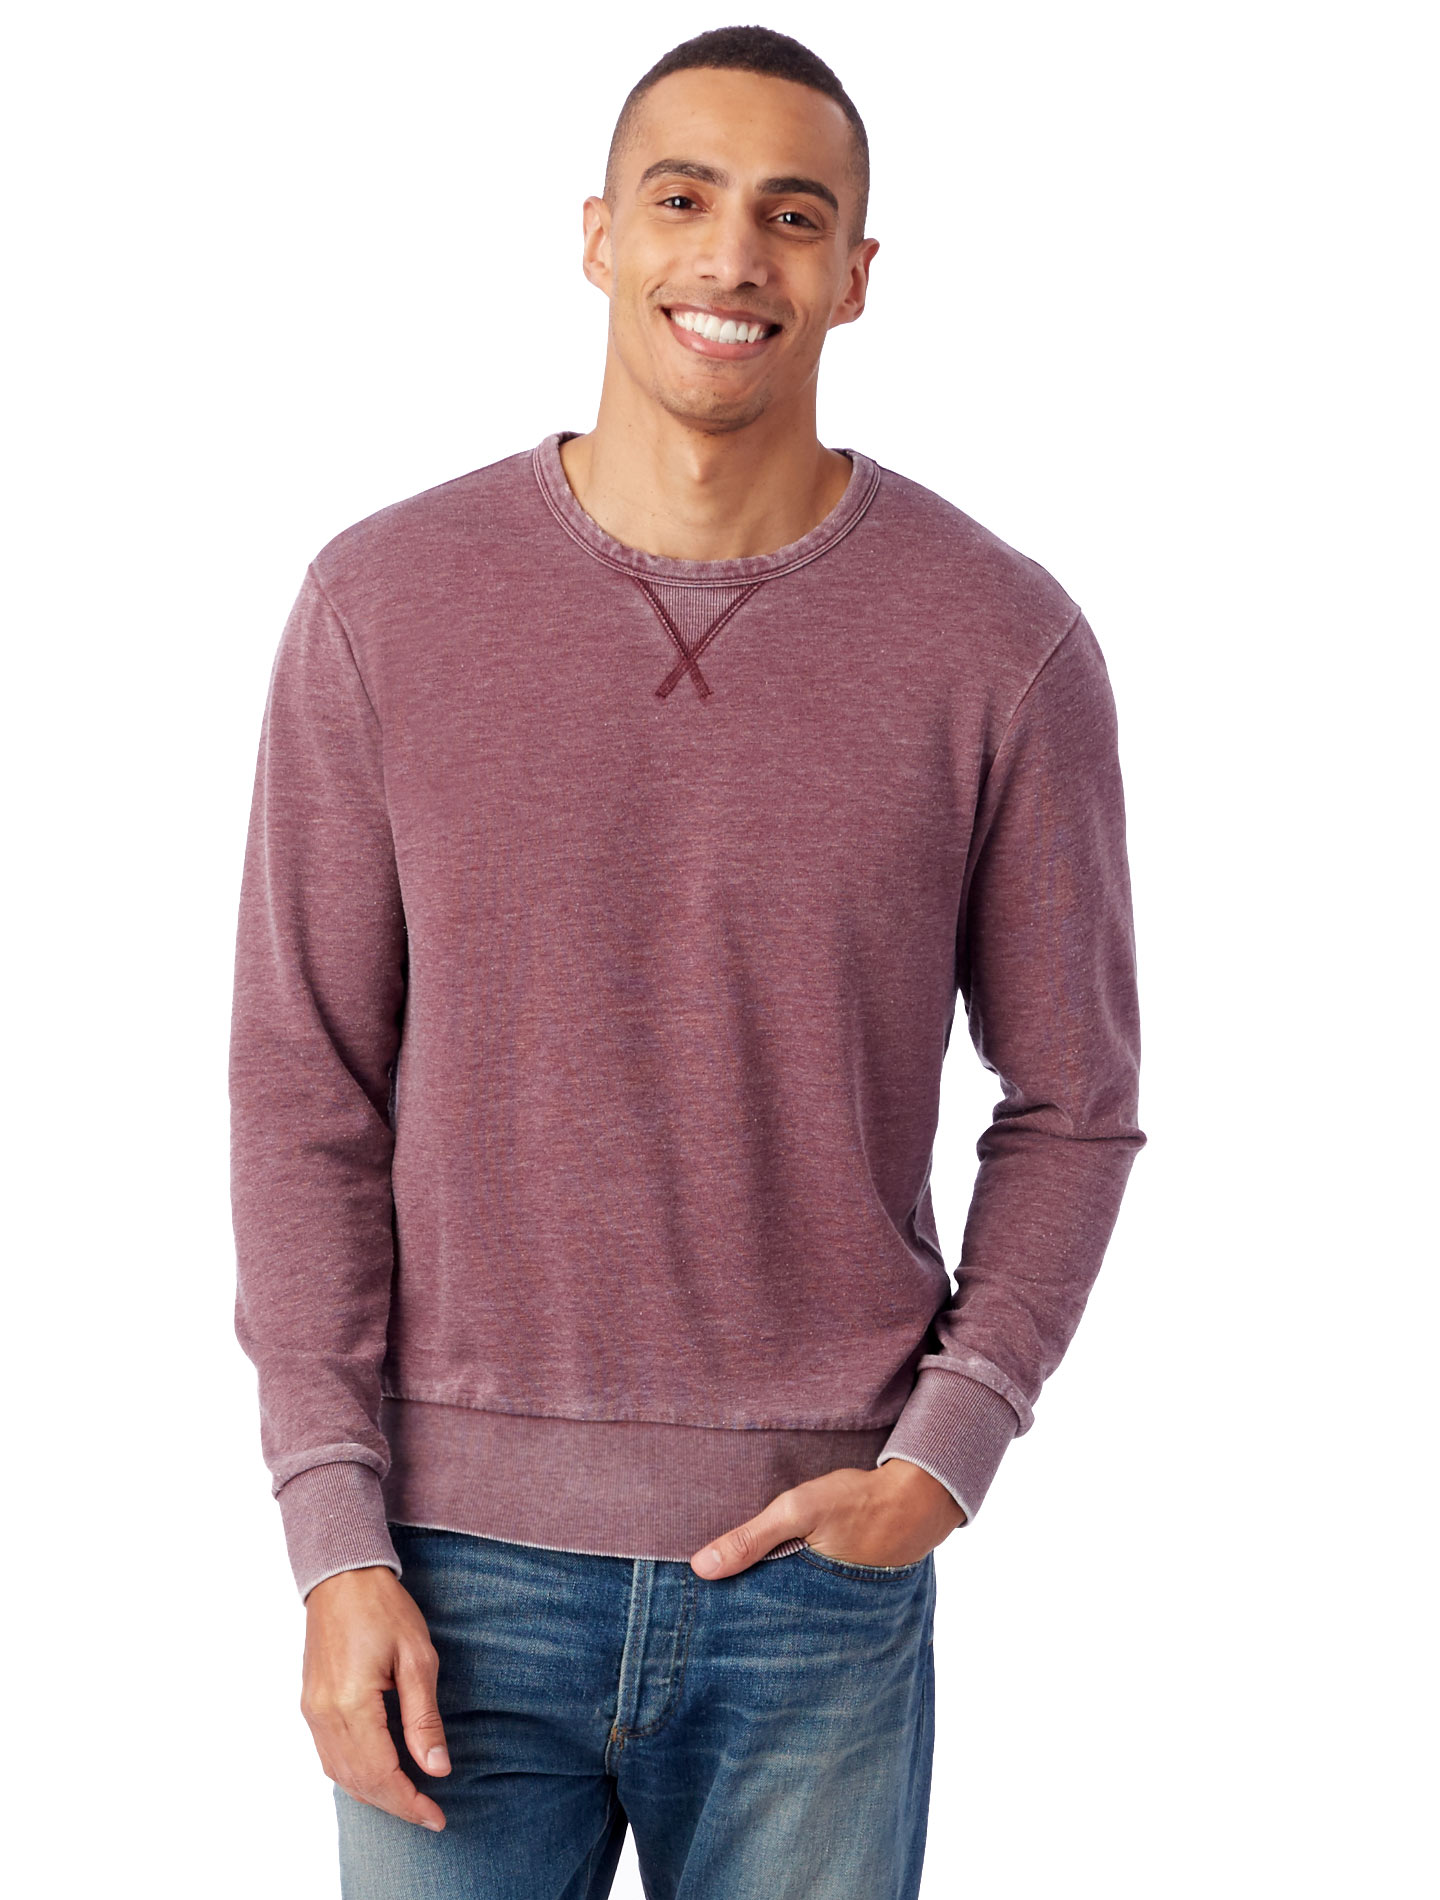 Looking this cool has never been easier (or more comfortable). This crewneck is made with our super-soft Burnout French terry for an authentically worn-in look & feel.